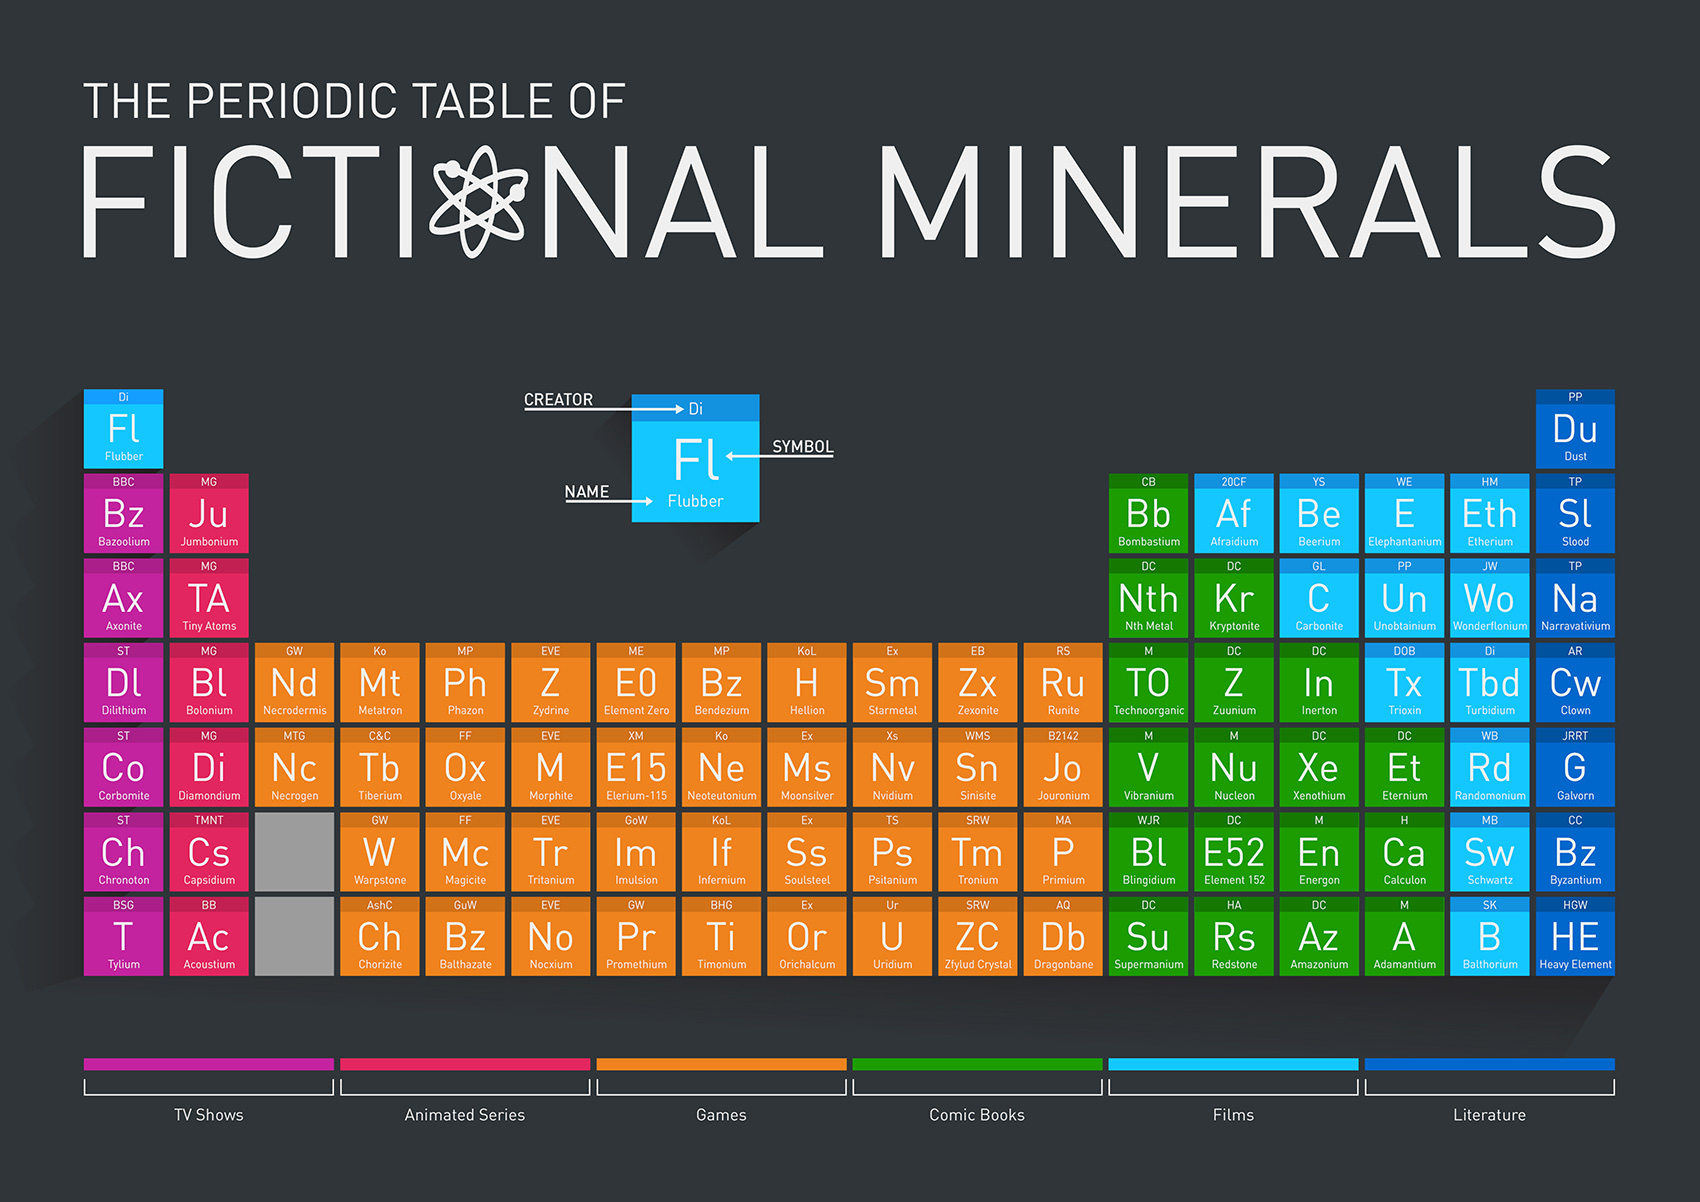 Periodic Table of Fictional Minerals (Source: Buy Metal Online)